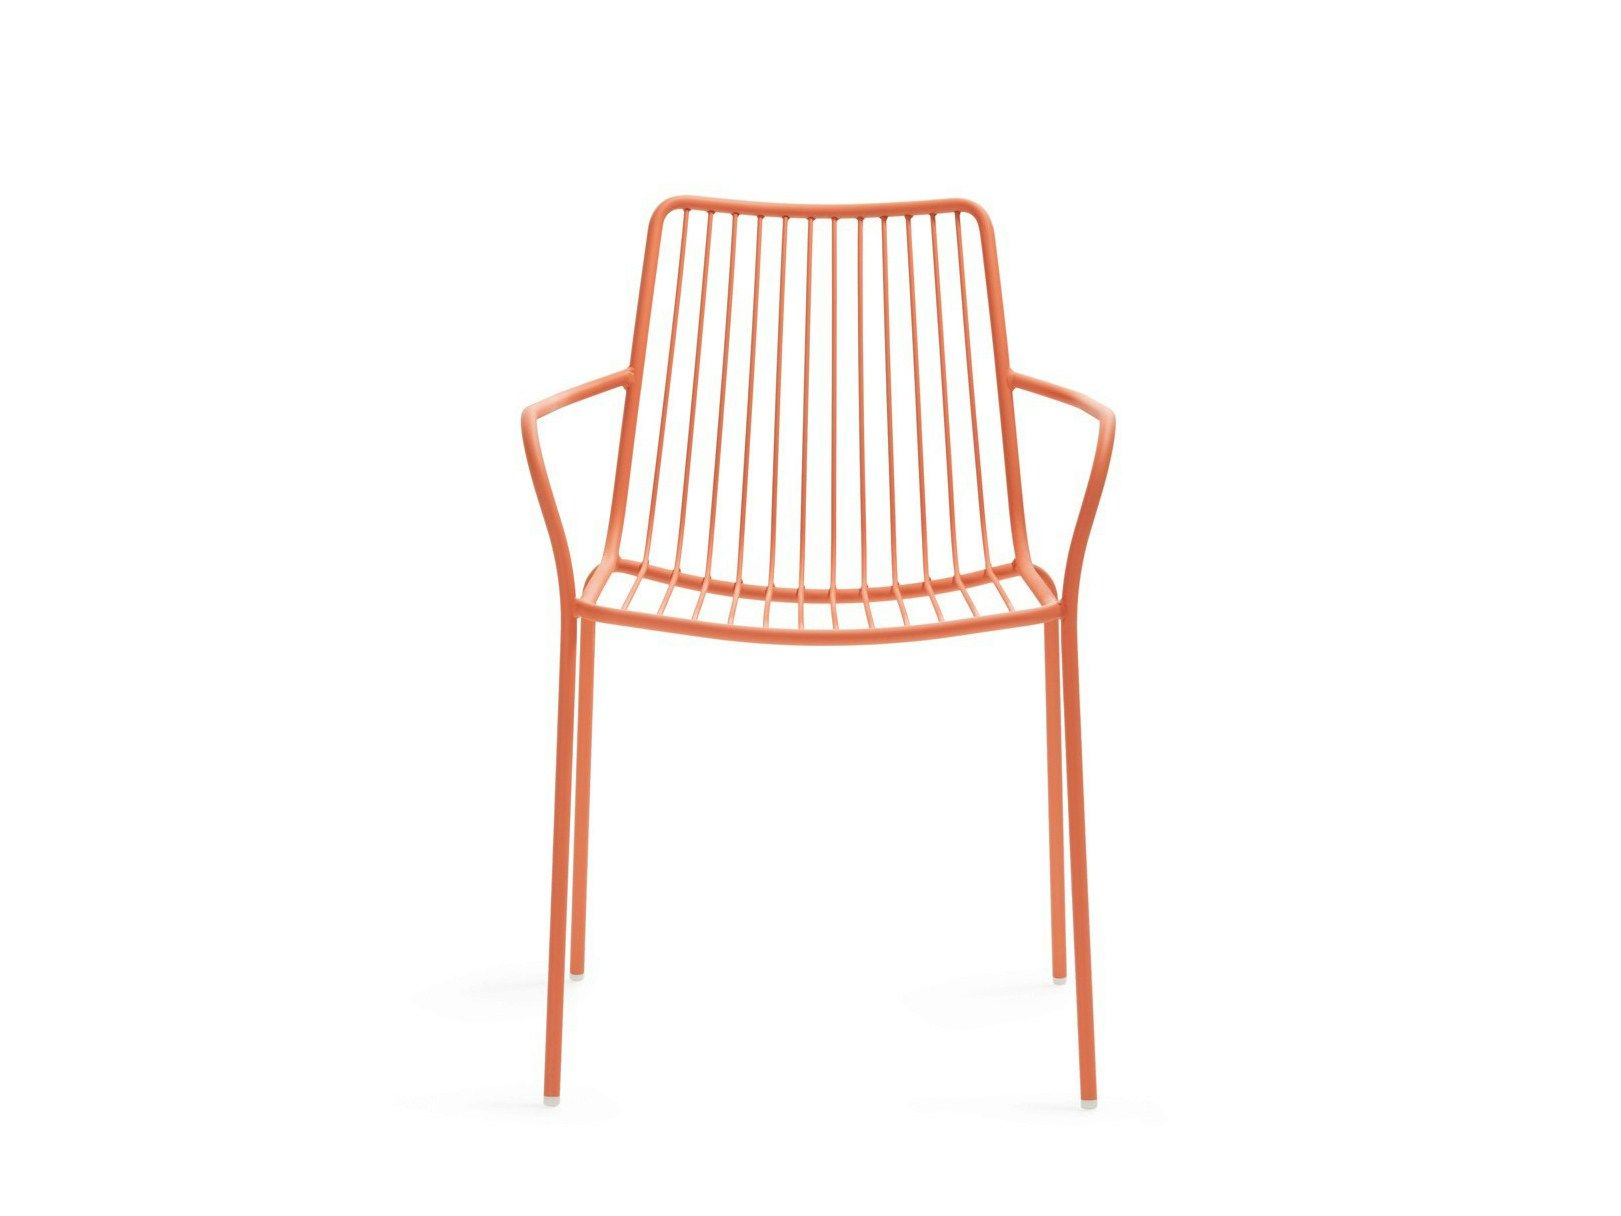 Vintage Chic A Return To Origins Pedrali Presents The Nolita Outdoor Chair Collection Avec Images Chaise